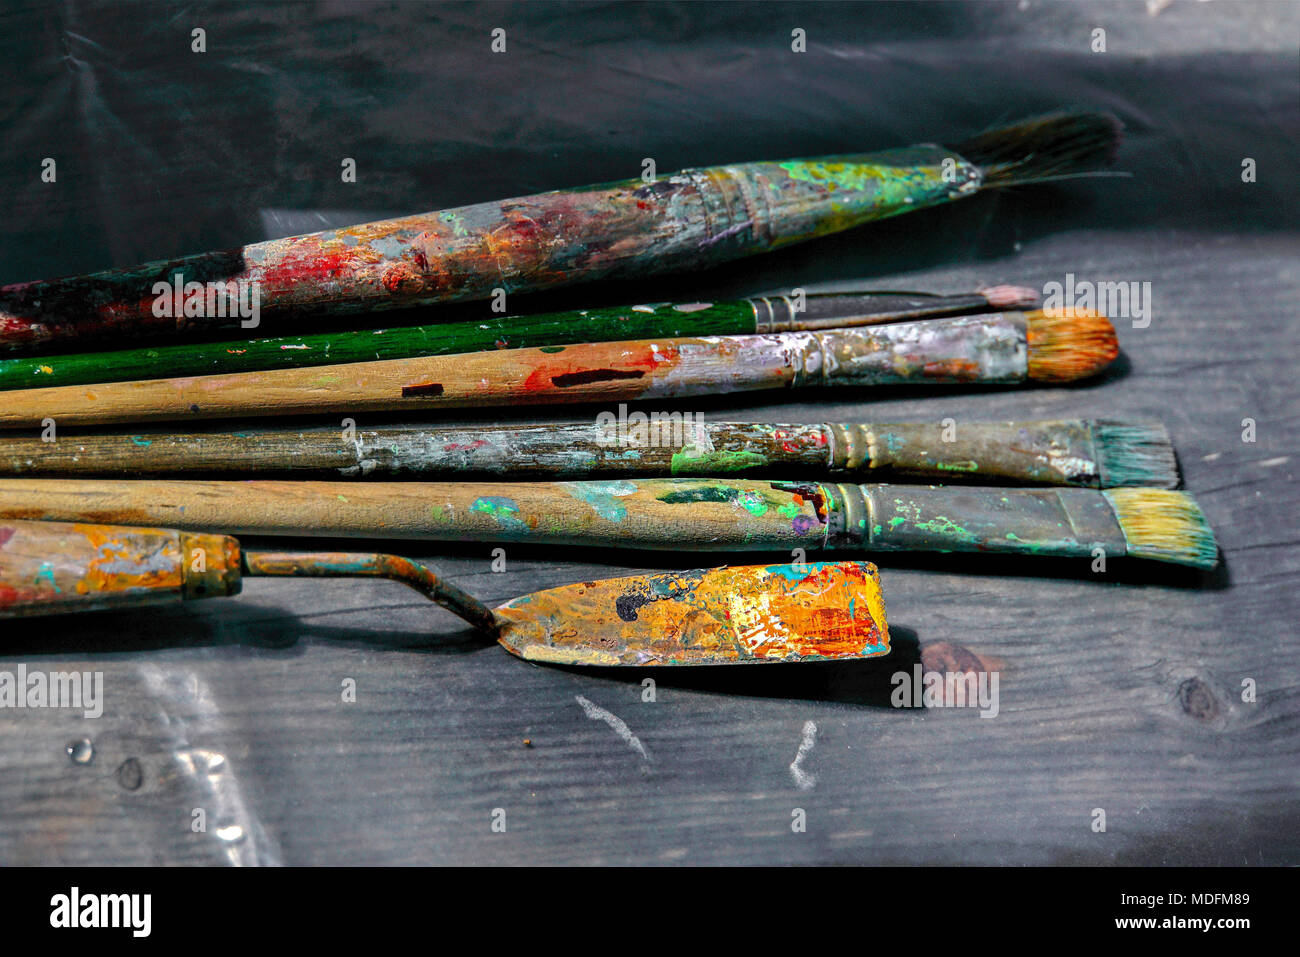 pallet knife and brushes on an artist's pallet - Stock Image